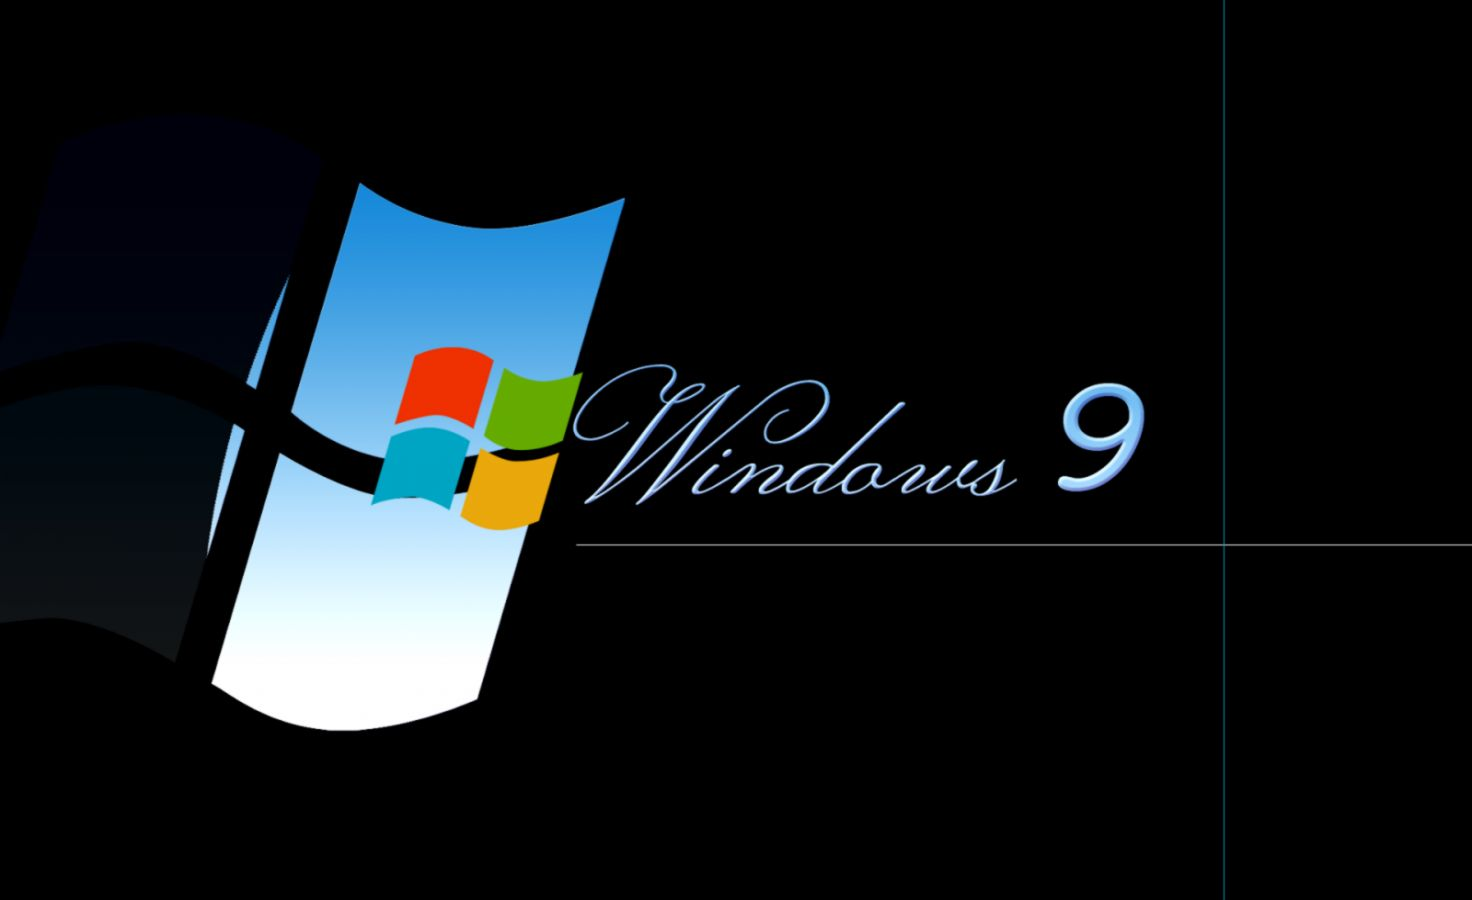 Windows 9 Wallpapers   Wallpaper Cave